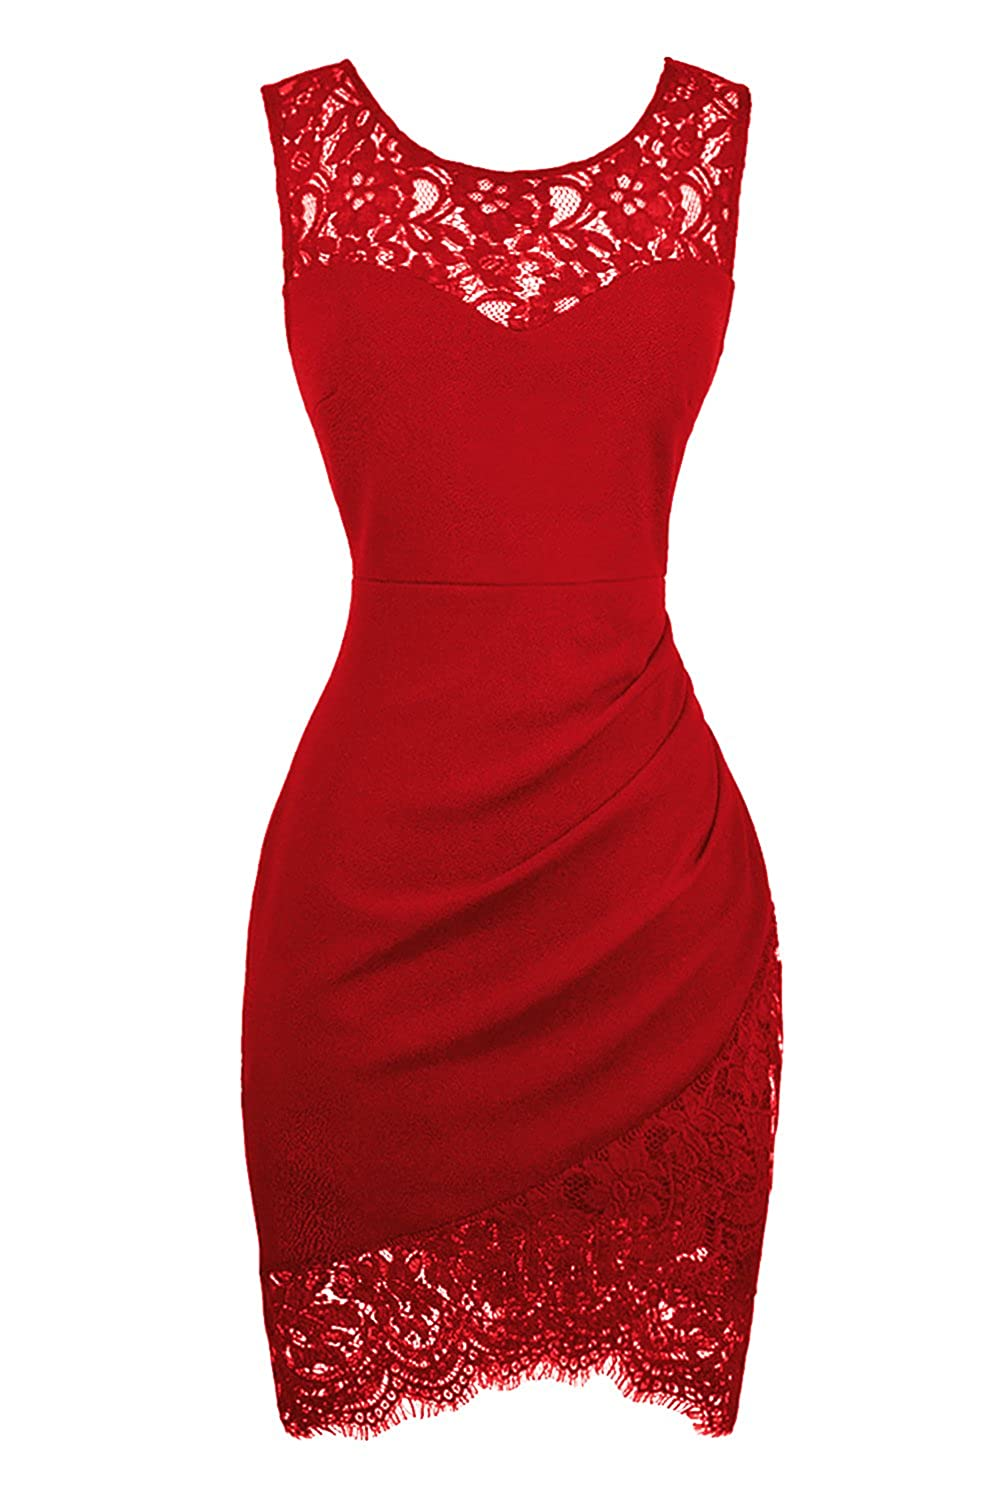 Swiland Women's Bodycon Sleeveless Little Cocktail Party Dress with Floral Lace